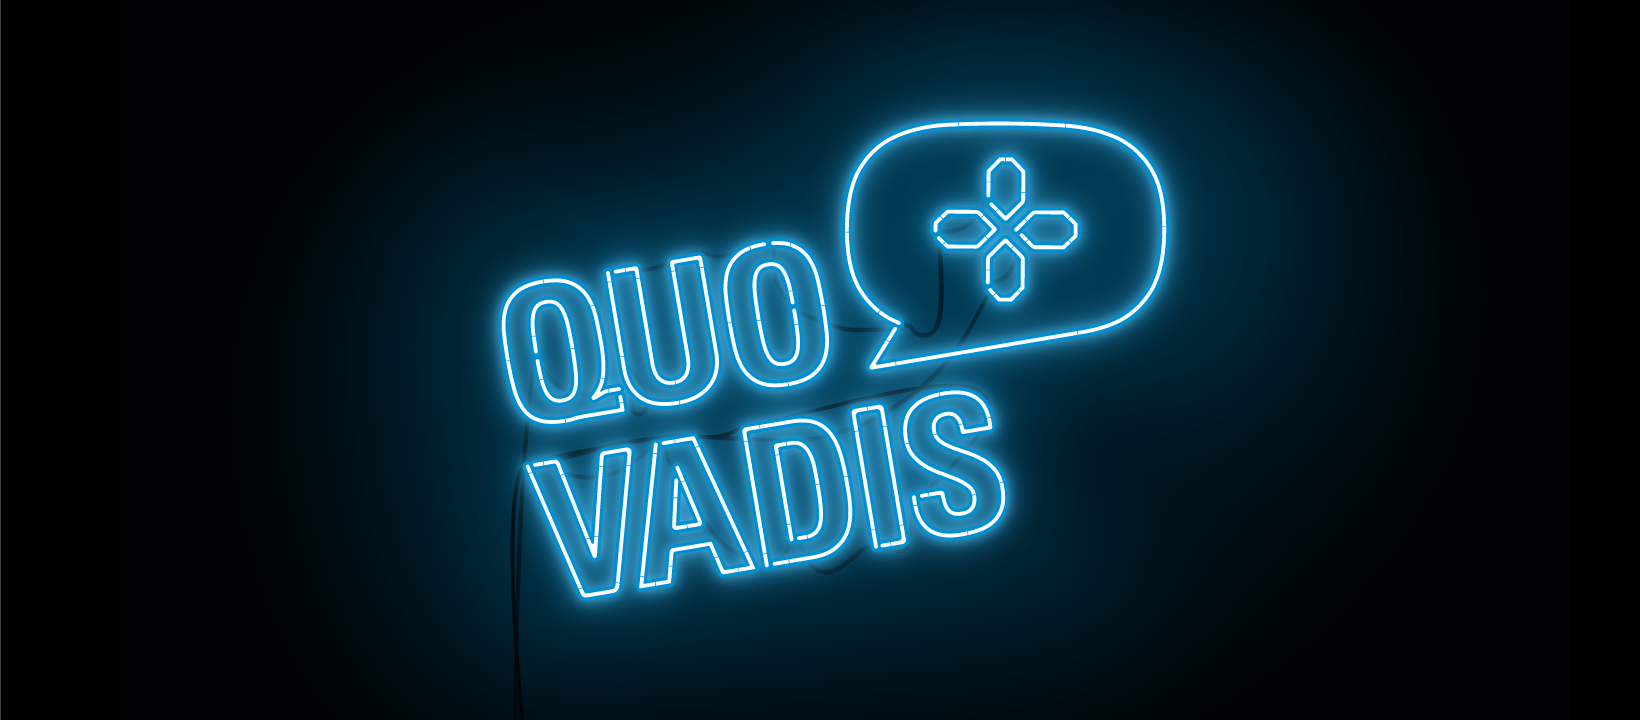 QUO VADIS 2020 - Game Developers Conference